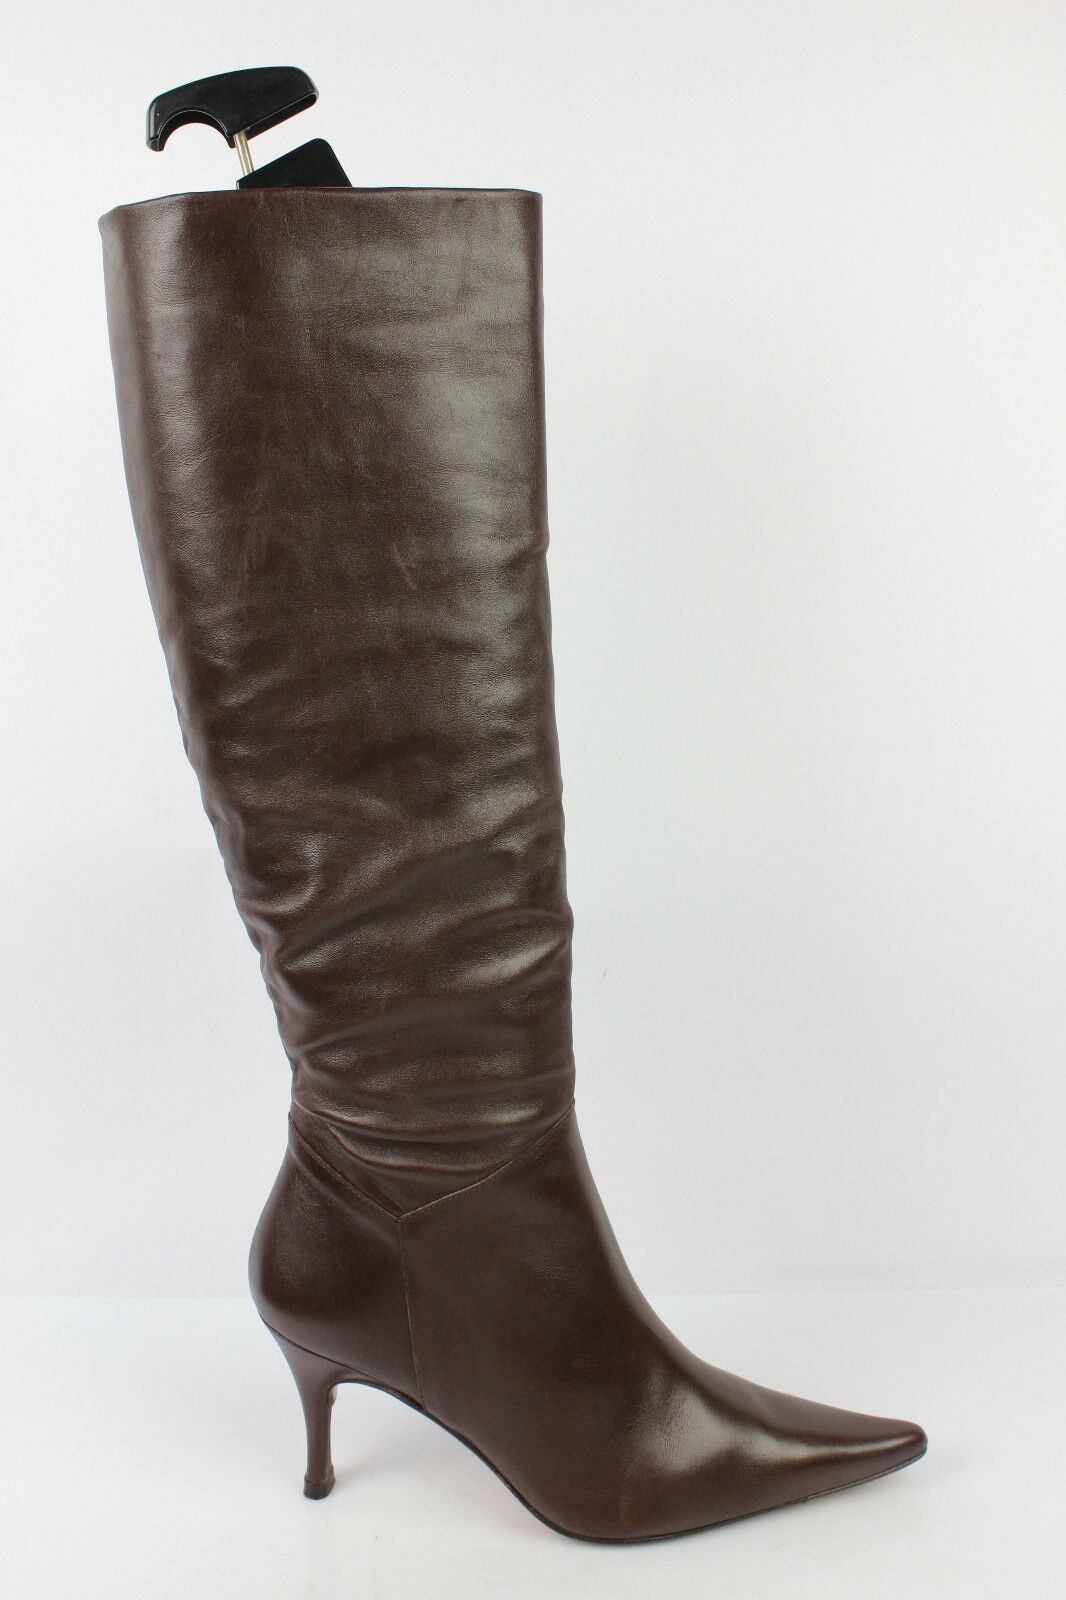 Boots Heels Needle VIVALDI Paris All Brown Leather FR 36,5 36,5 36,5 VERY GOOD CONDITION b5e900